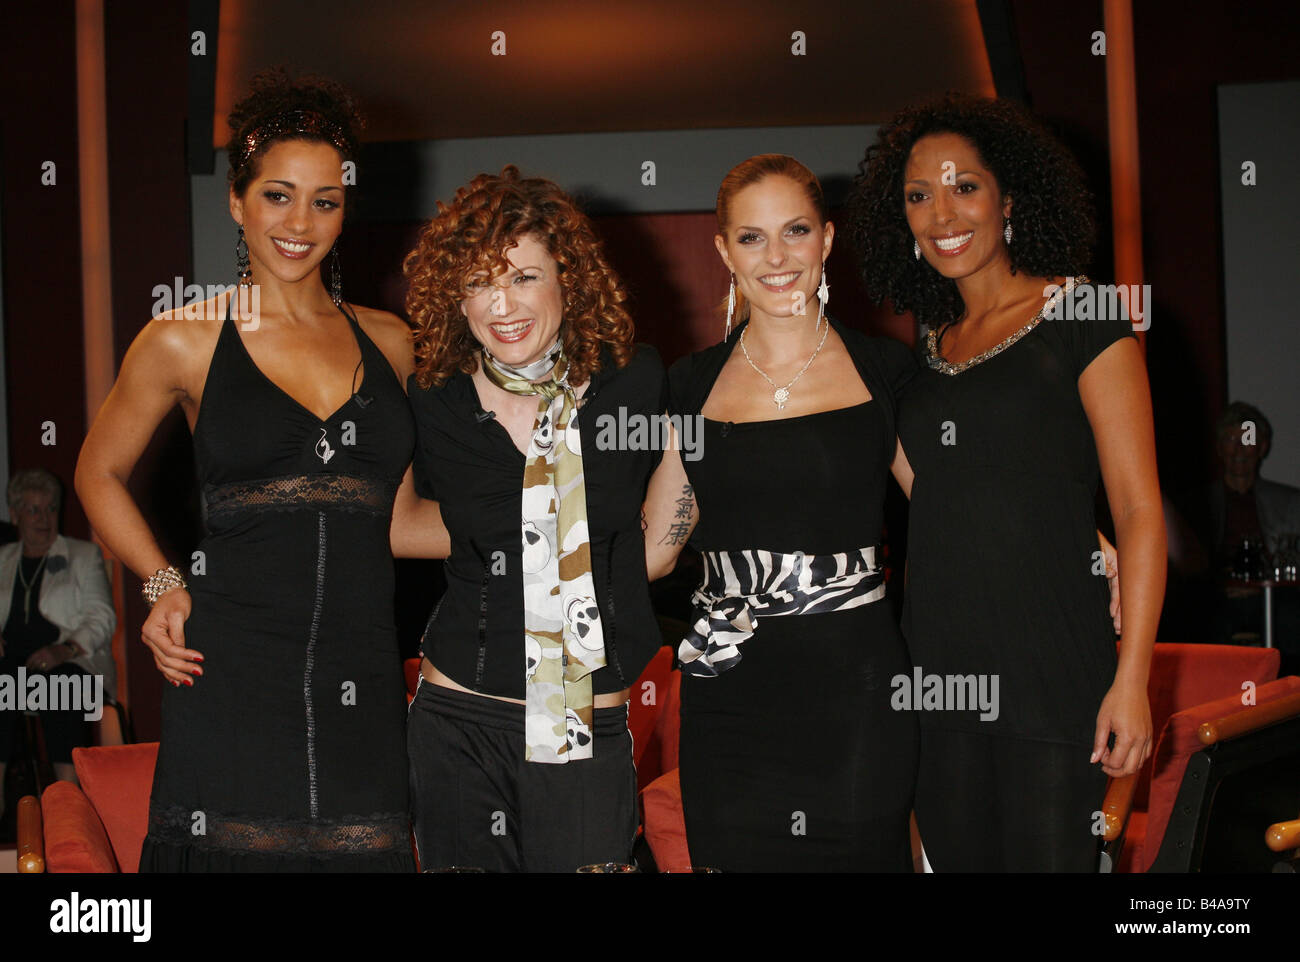 No Angels, German pop group (pop music), founded: 2001, members: Nadja Benaissa, Ludmila Diakovska, Sandy Mölling, Stock Photo